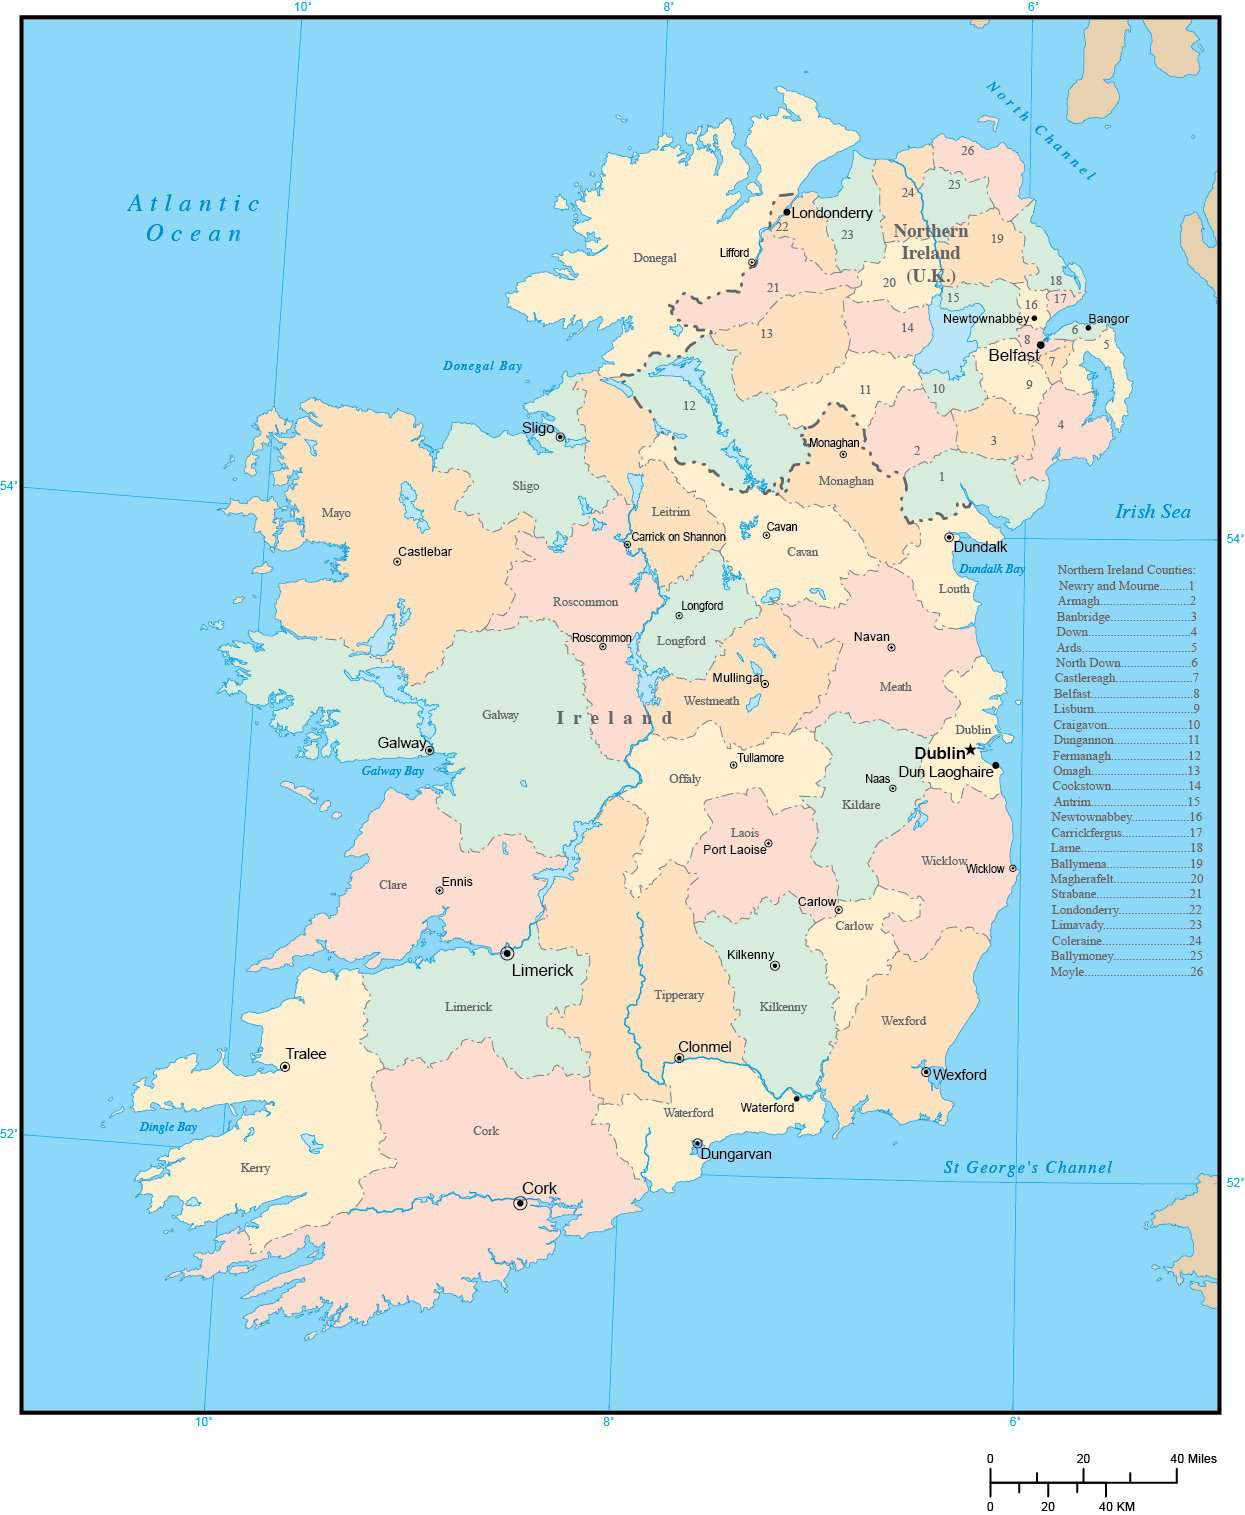 Map Of Counties Of Northern Ireland.Ireland Map With County Areas And Capitals In Adobe Illustrator